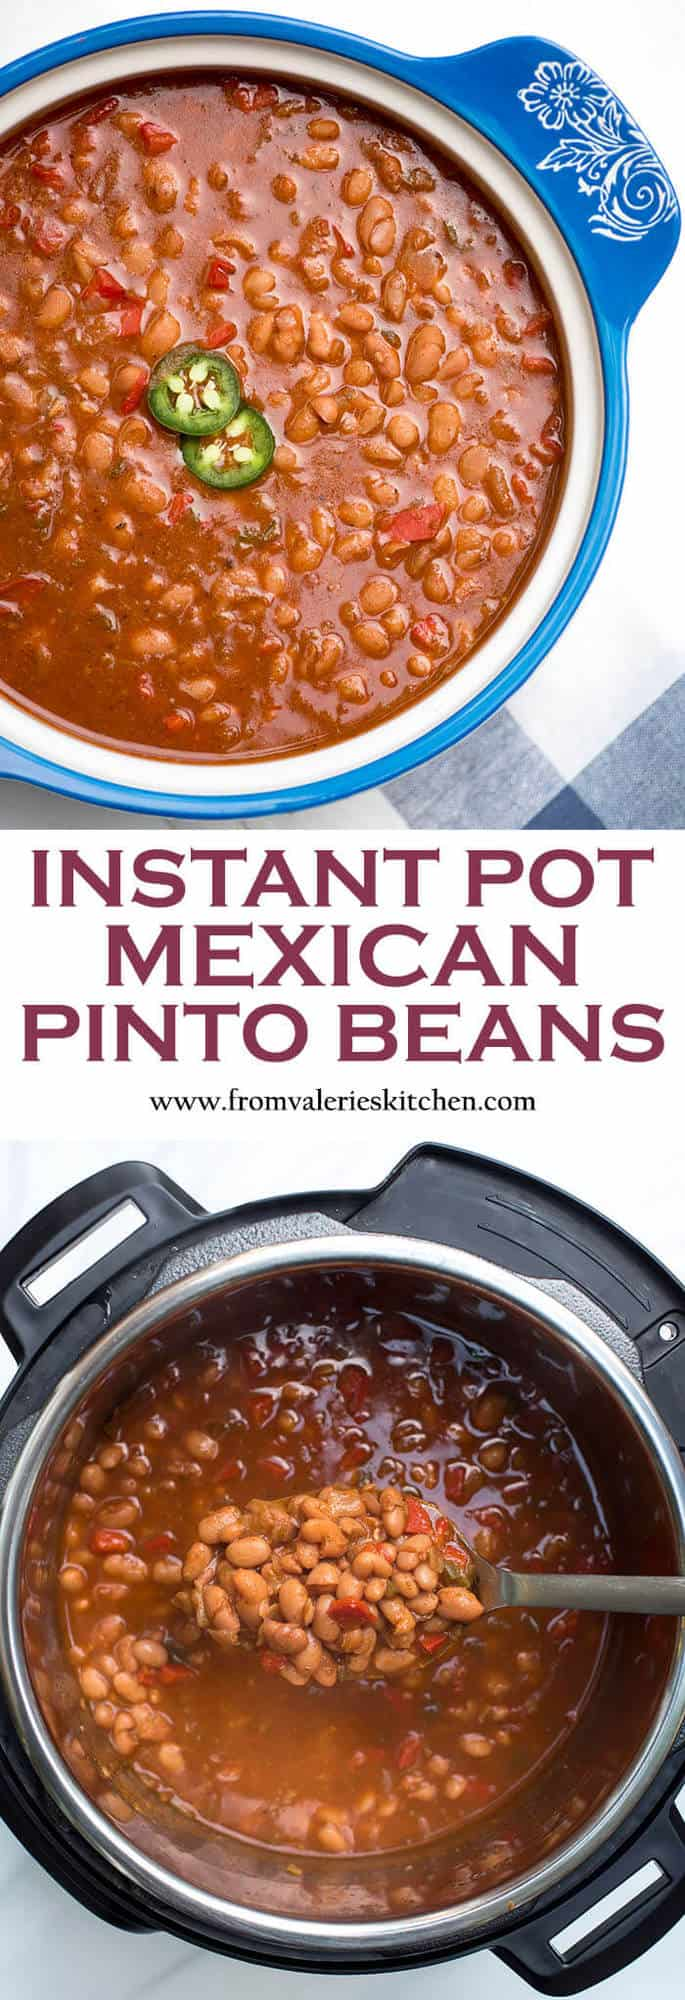 A two image vertical collage of Instant Pot Mexican Pinto Beans with overlay text.